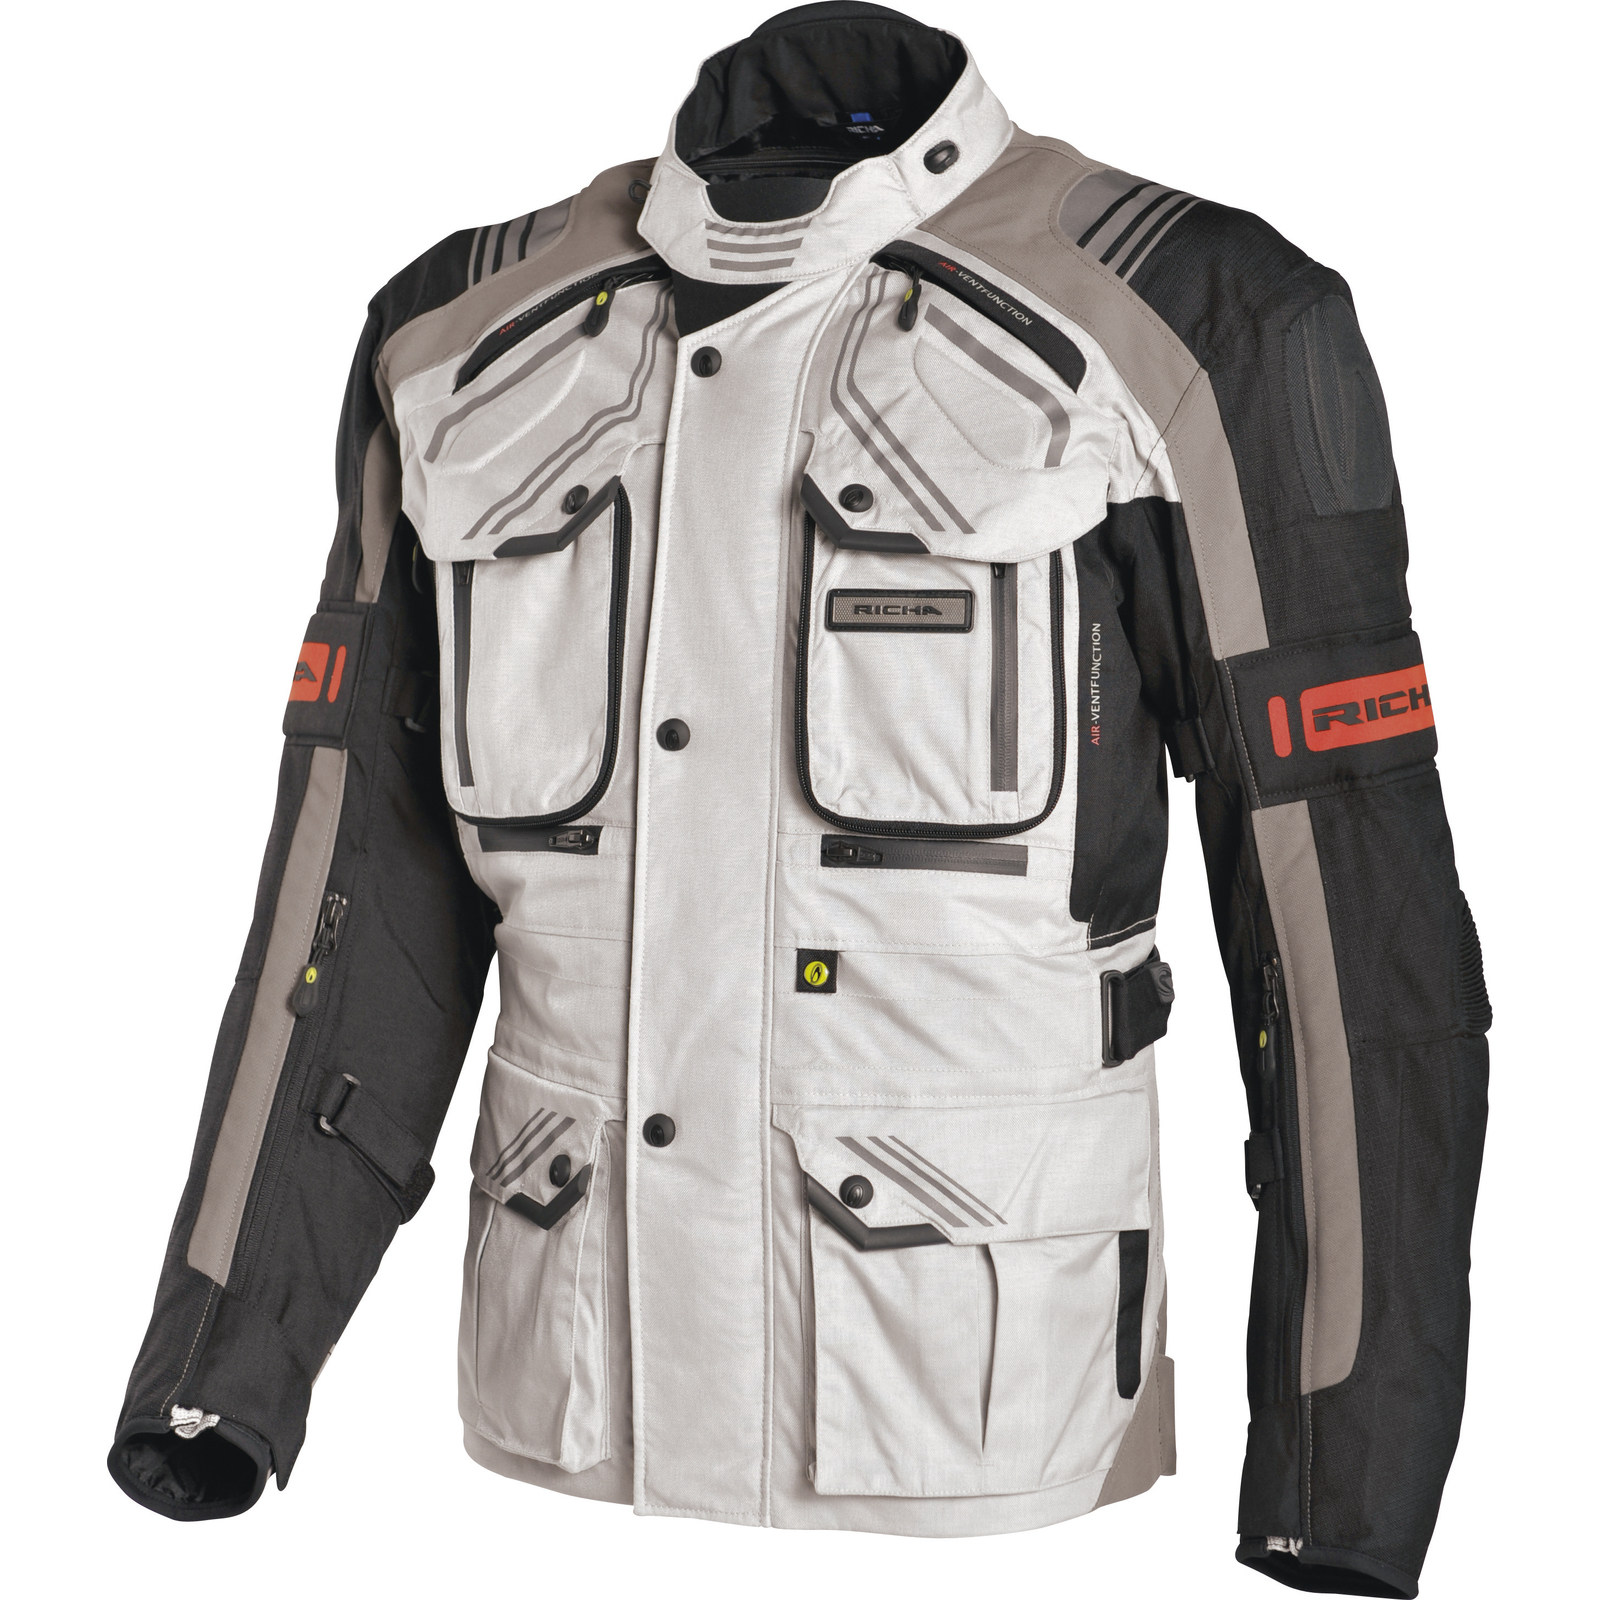 Top five Types of Motorcycle Jackets